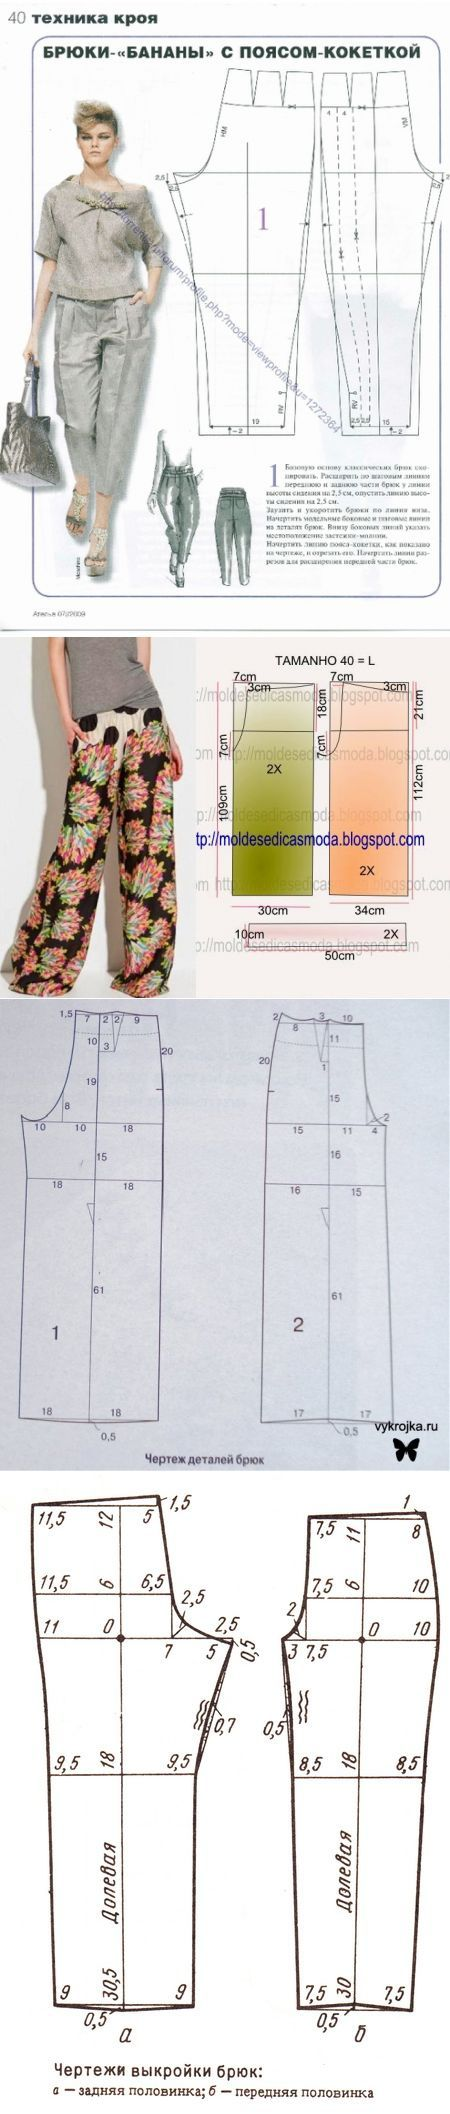 pattern summer pants for obese women: 21 thousand images found in Yandeks.Kartinki